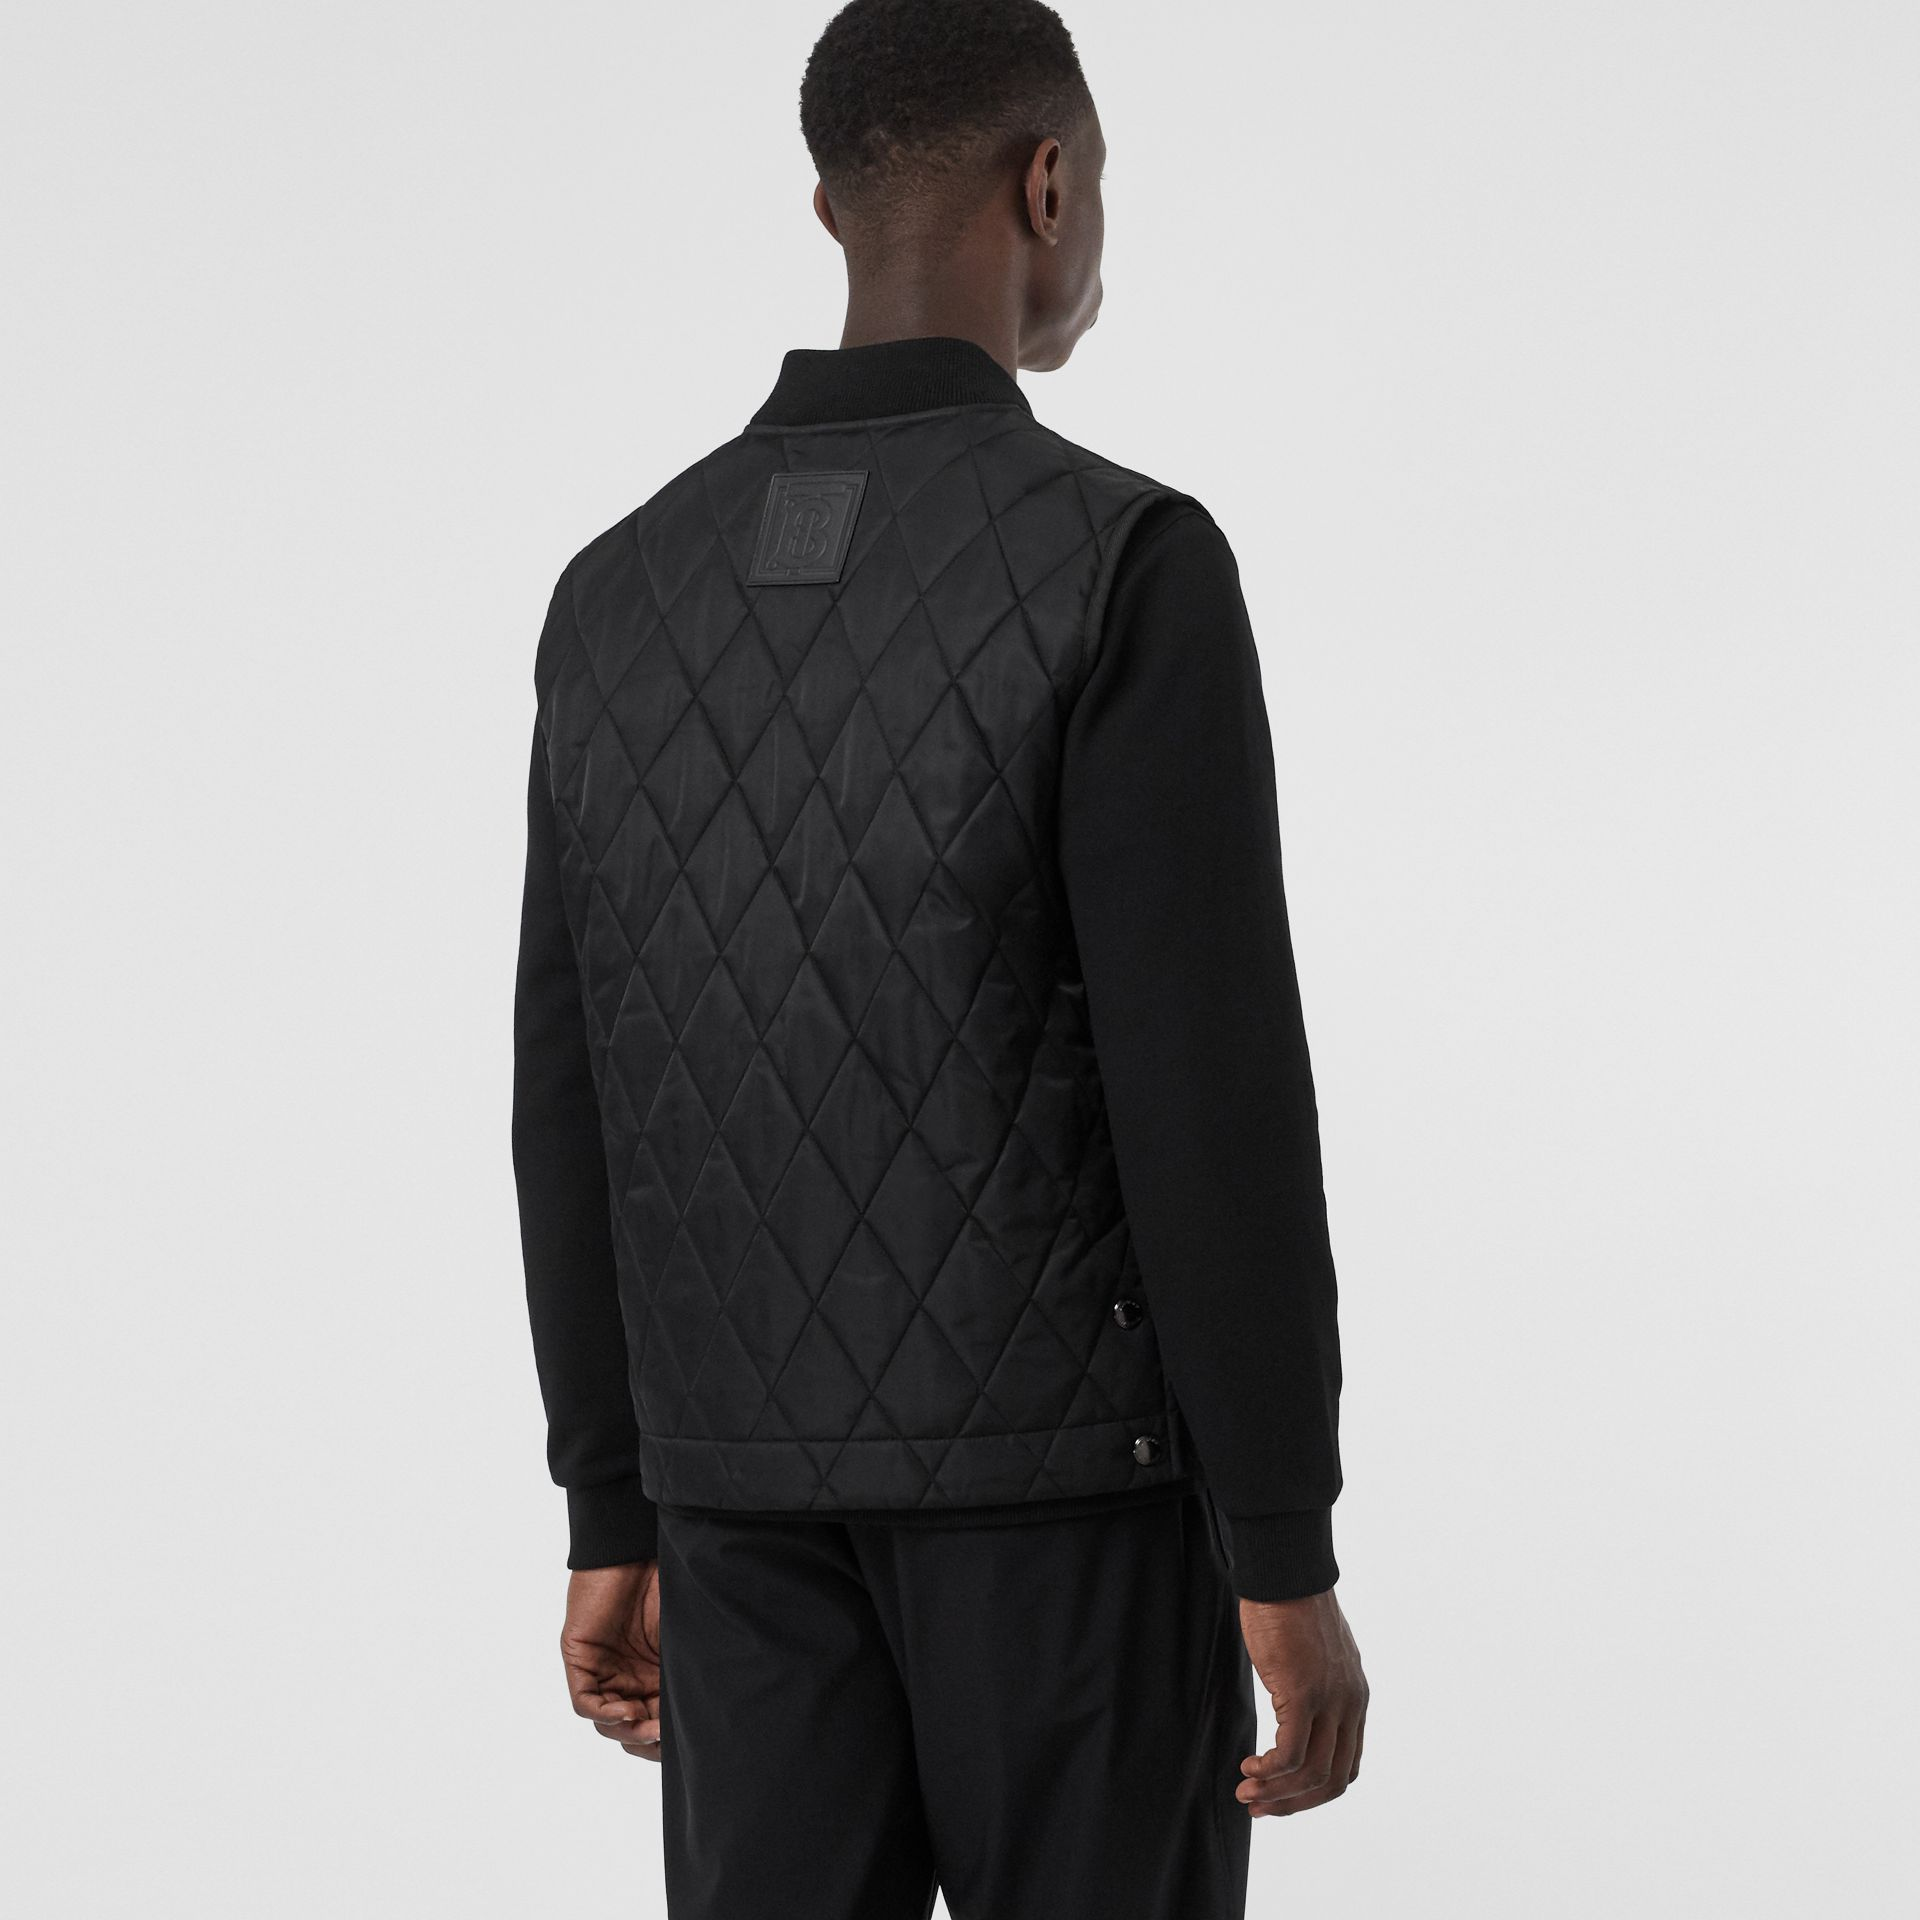 Monogram Motif Diamond Quilted Gilet in Black - Men | Burberry - gallery image 1